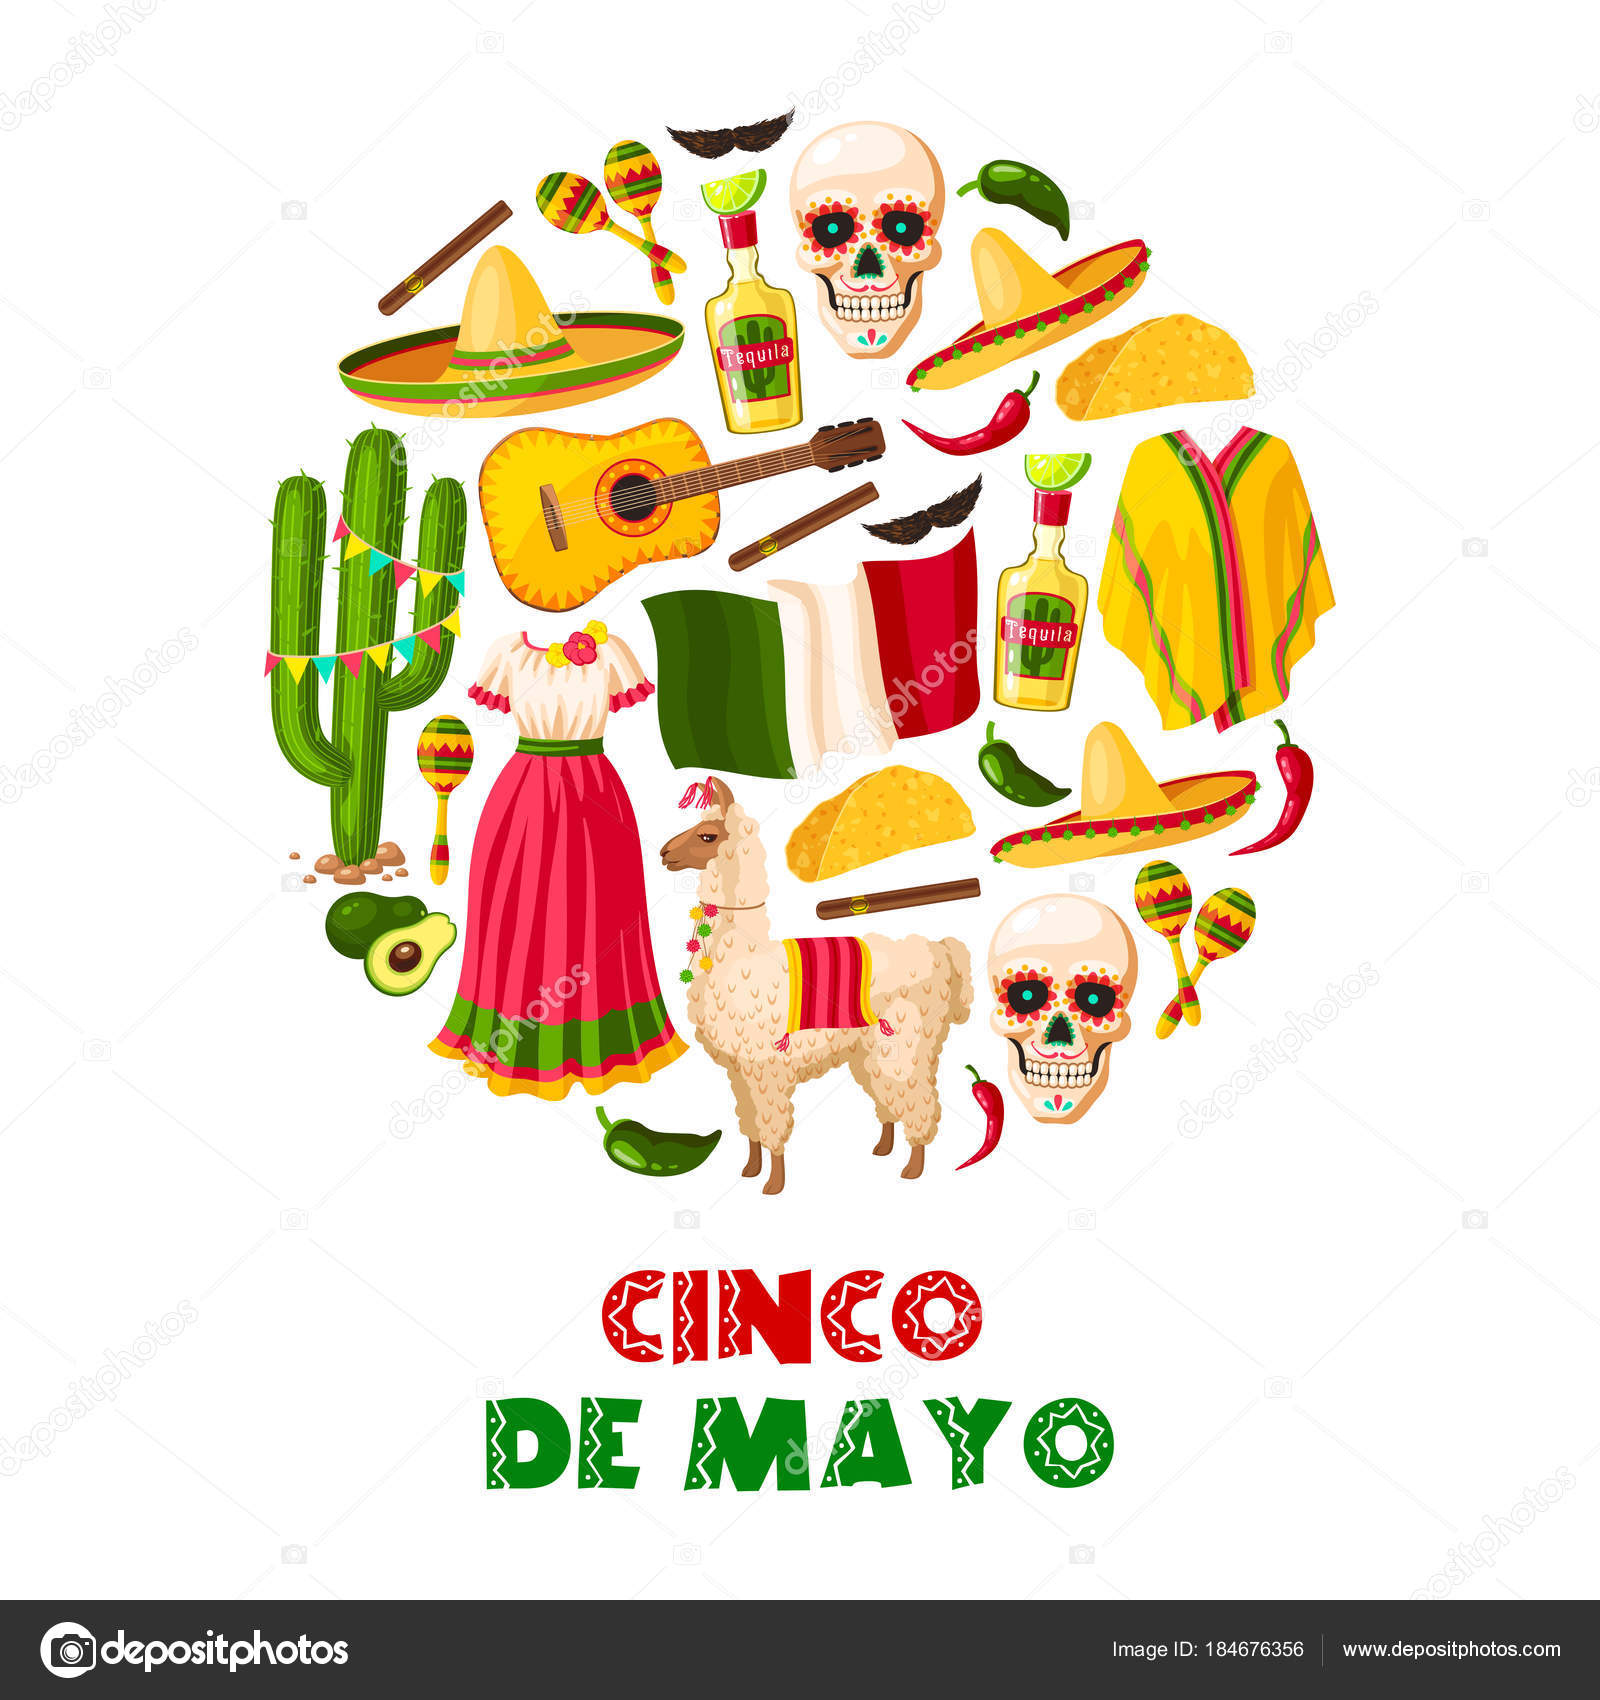 Mexican holiday card of cinco de mayo fiesta party stock vector mexican holiday greeting card for cinco de mayo fiesta party sombrero hat chili pepper and jalapeno maracas cactus and tequila margarita flag of mexico m4hsunfo